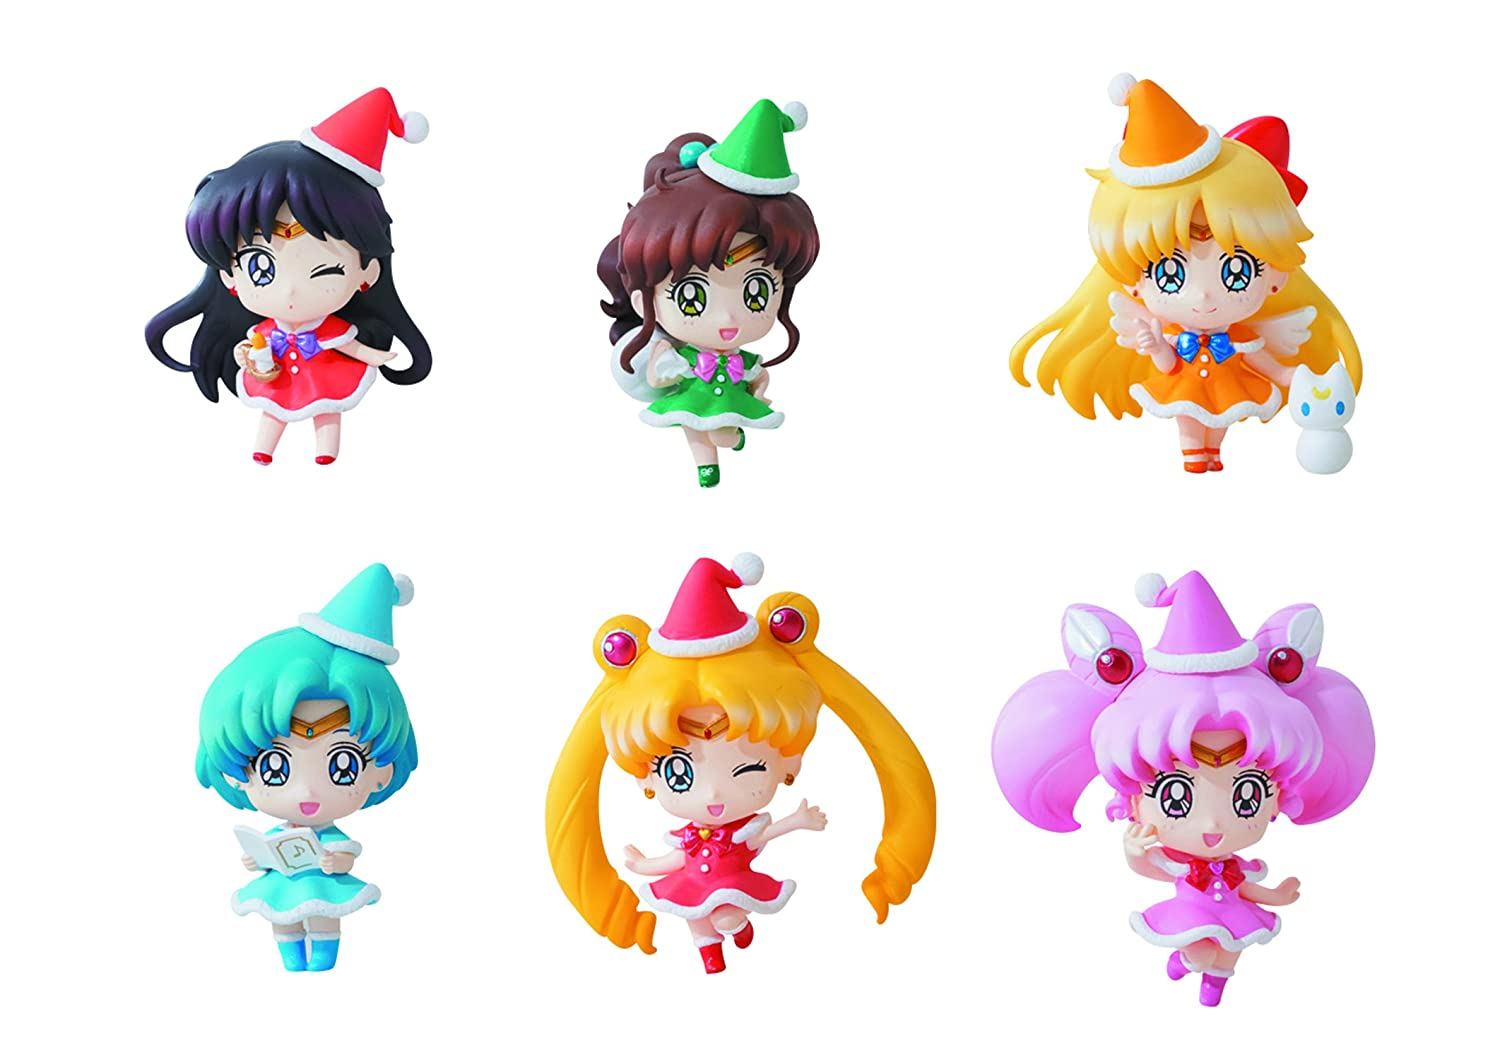 Amazon.de:Megahouse Sailor Moon Petit Chara: Sailor Moon Mini ...